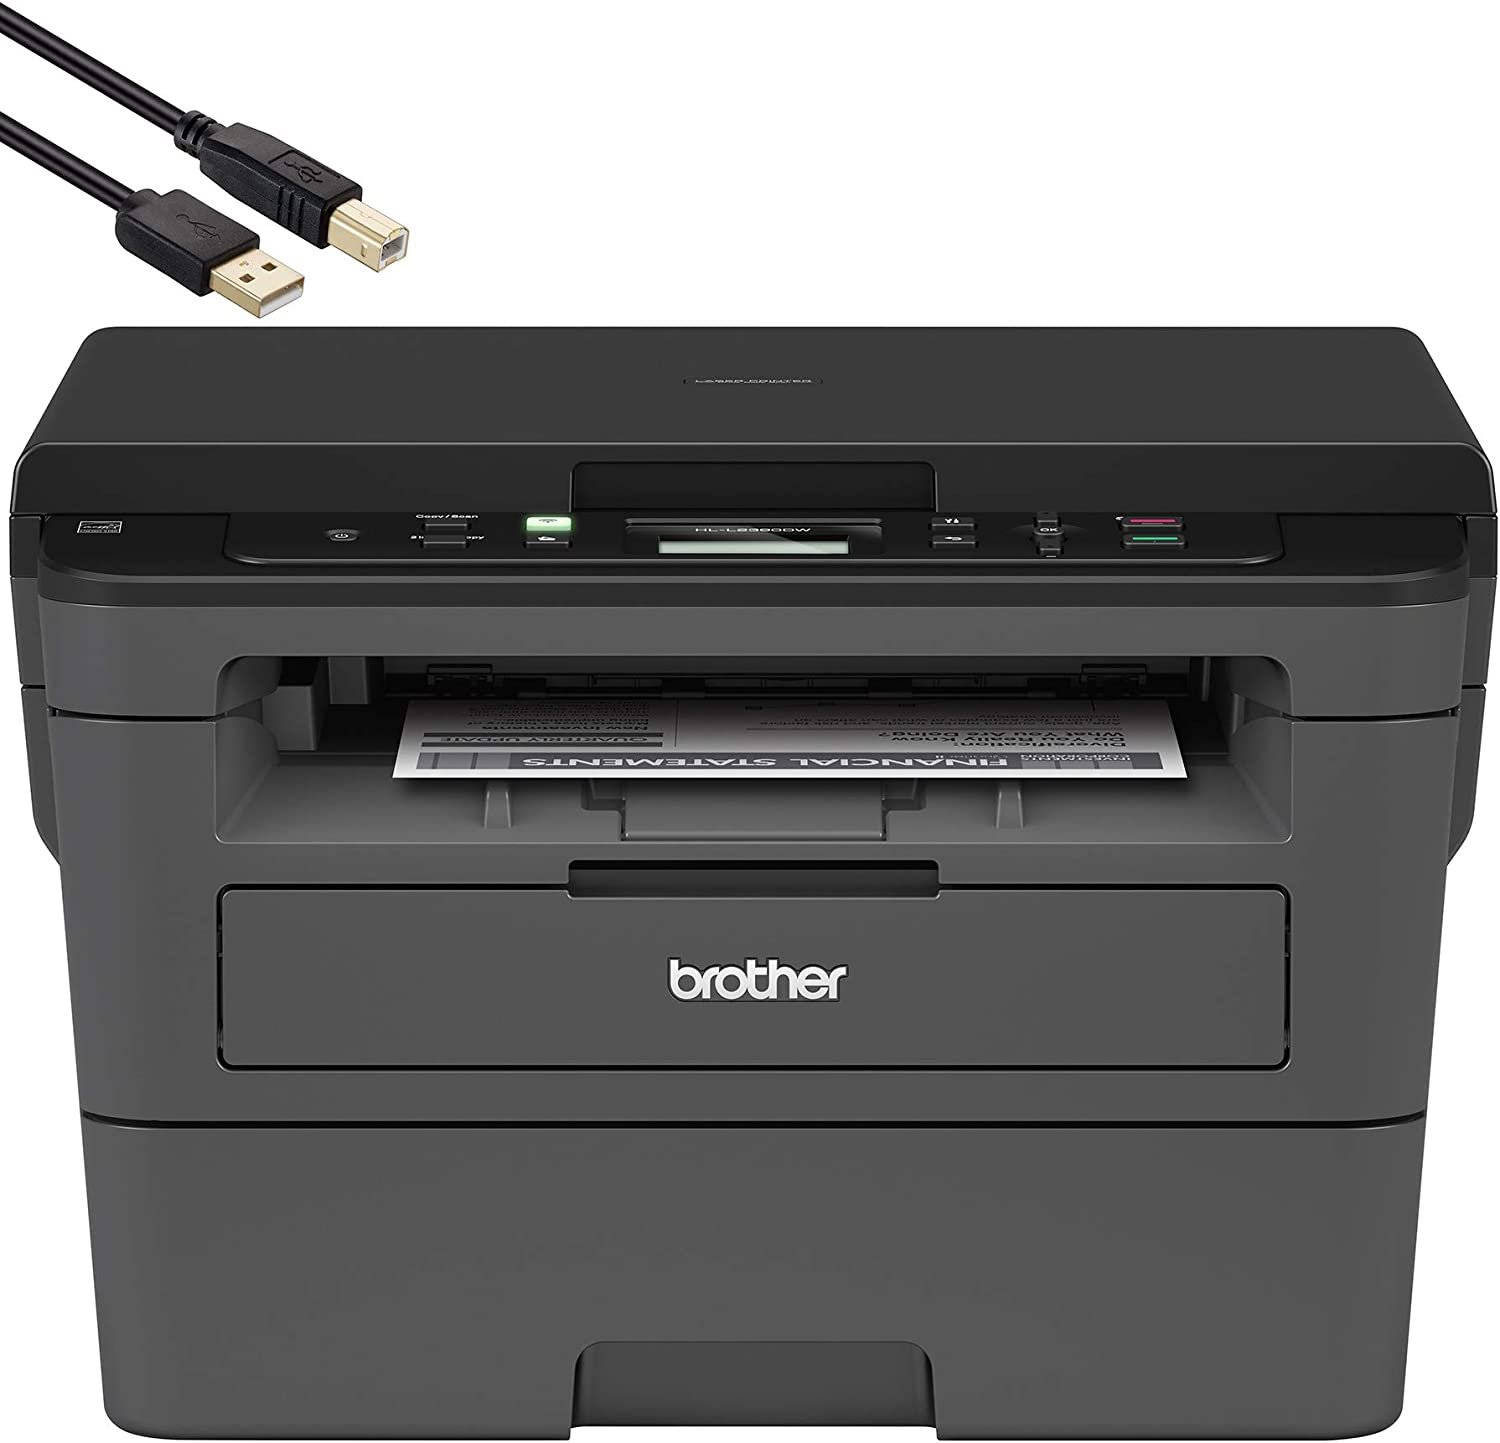 Brother Compact Monochrome Laser Printer - HLL2390DW - Convenient Business Office Flatbed Copy & Scan, Wireless Printing, Duplex Two-Sided Printing for Business Office - BROAGE 5 FT USB Printer Cable